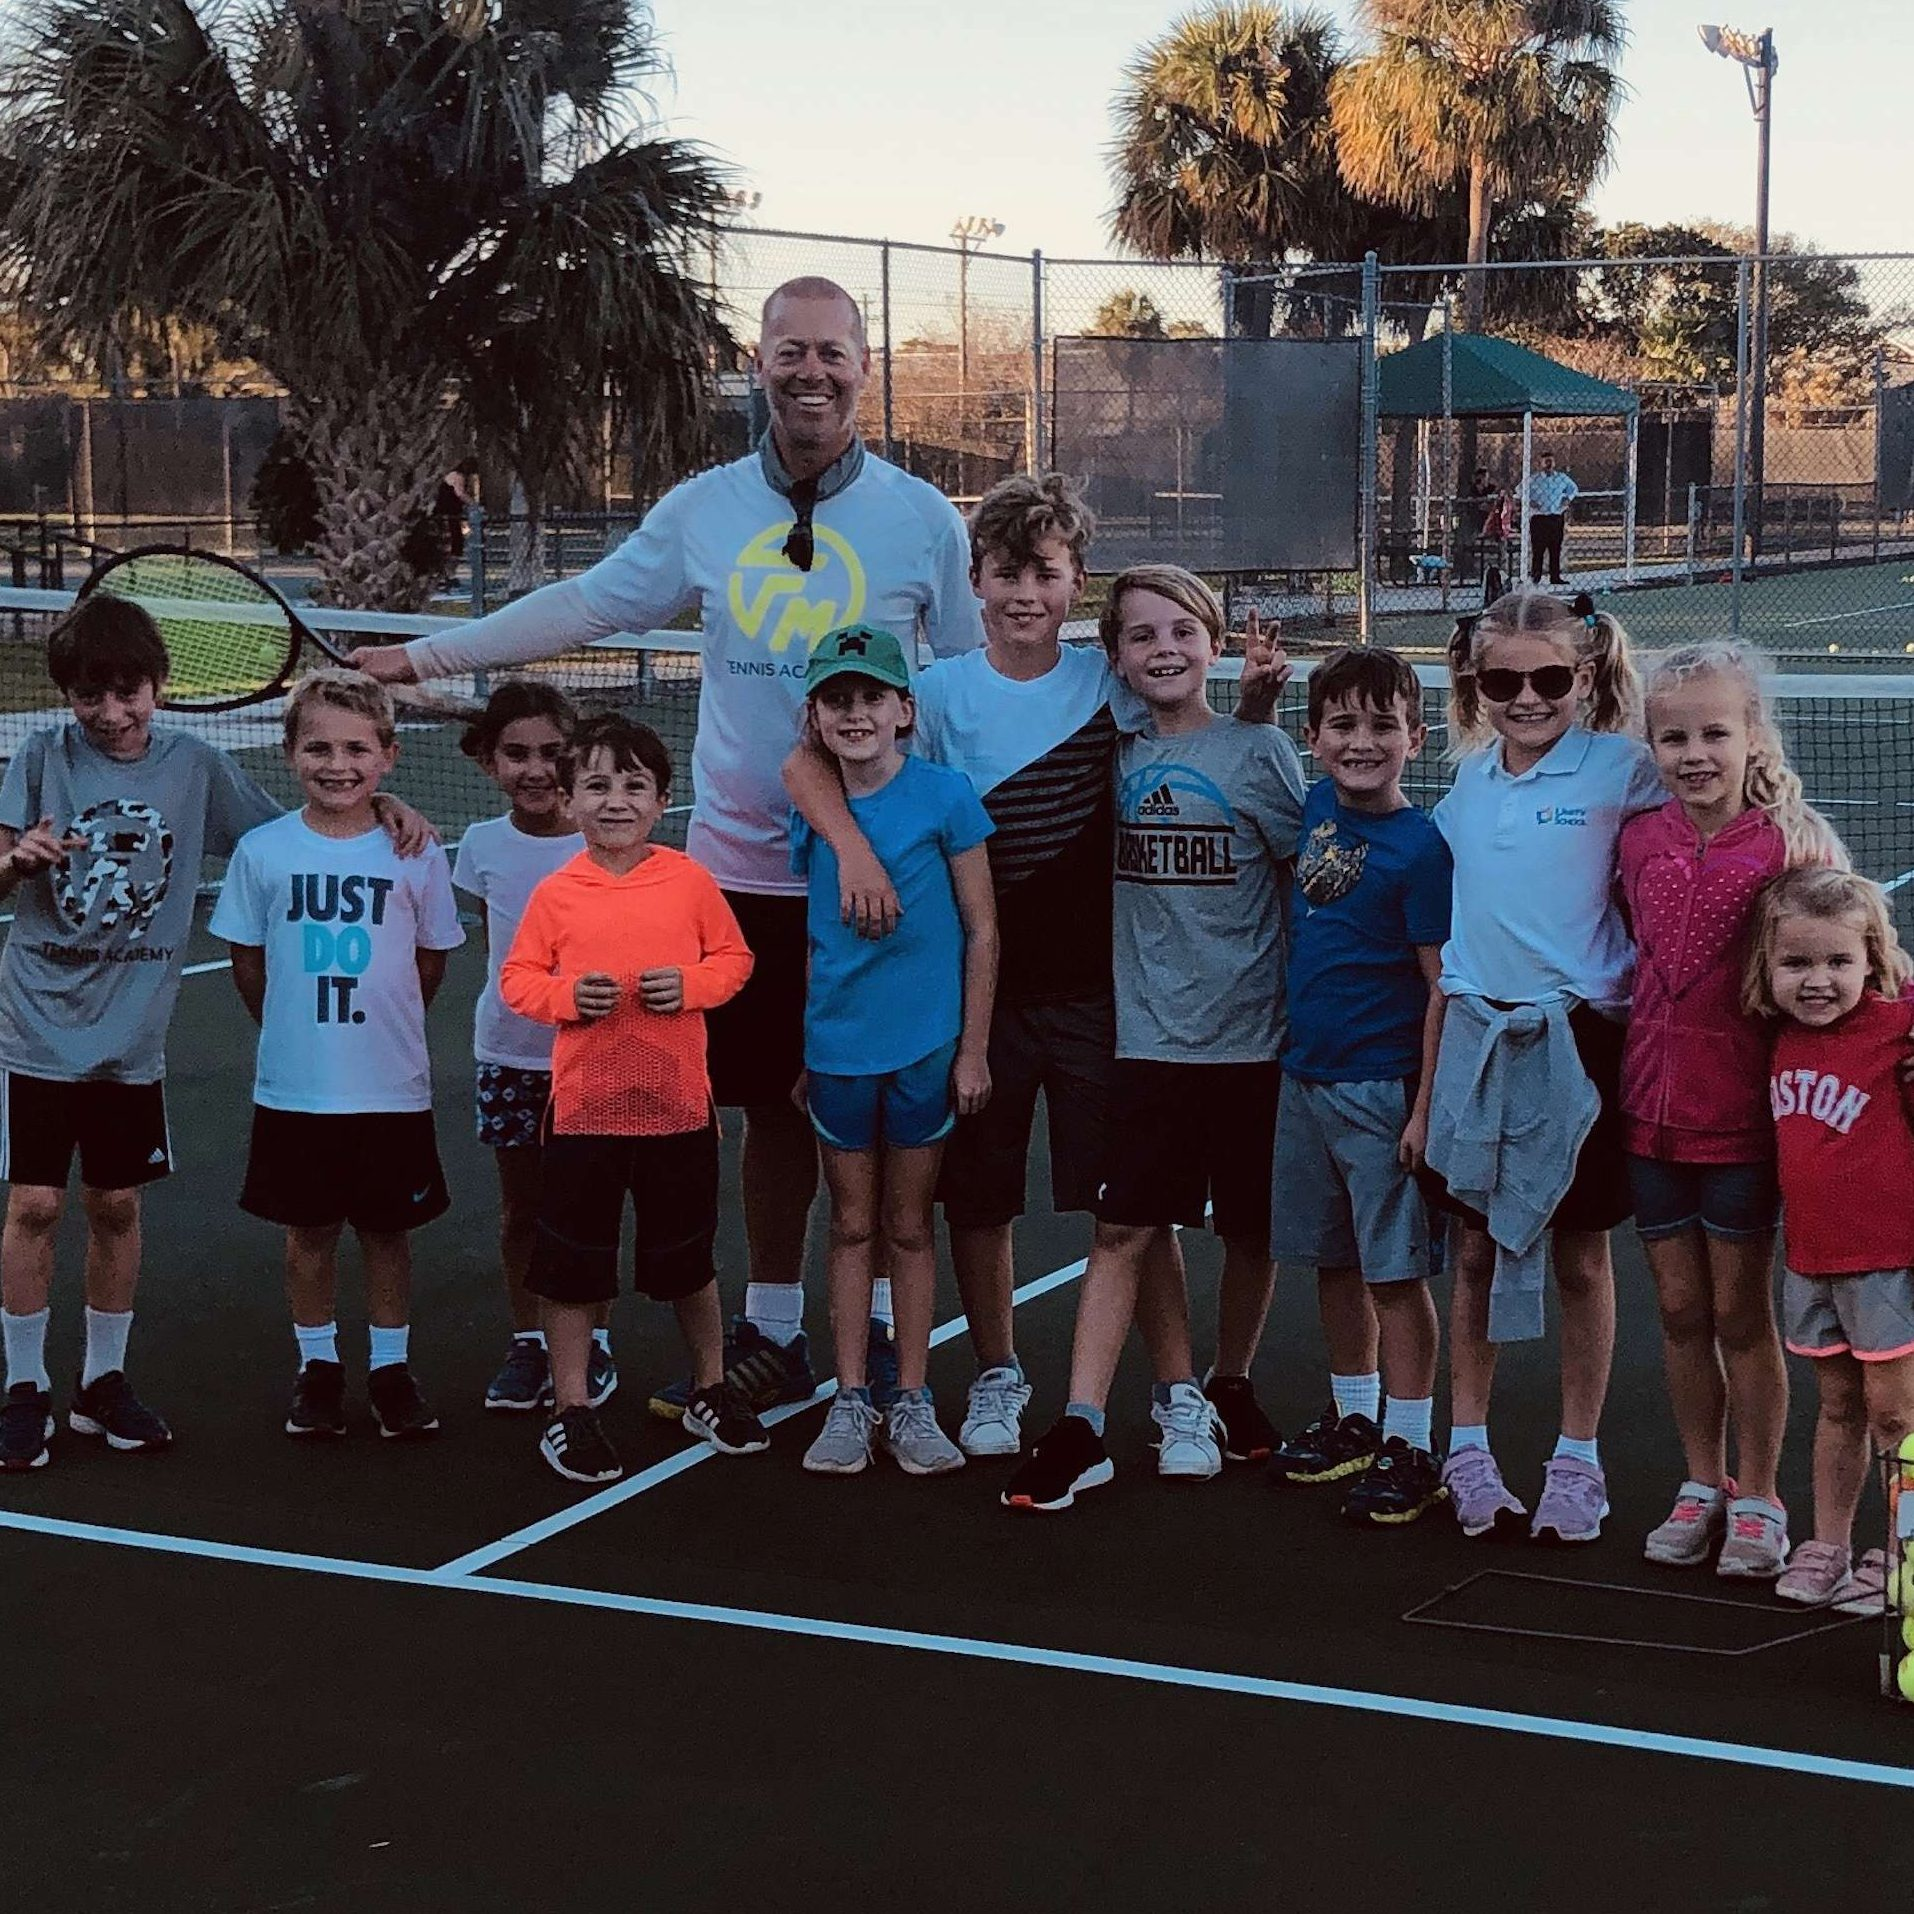 Youth tennis with Allington Mutimer